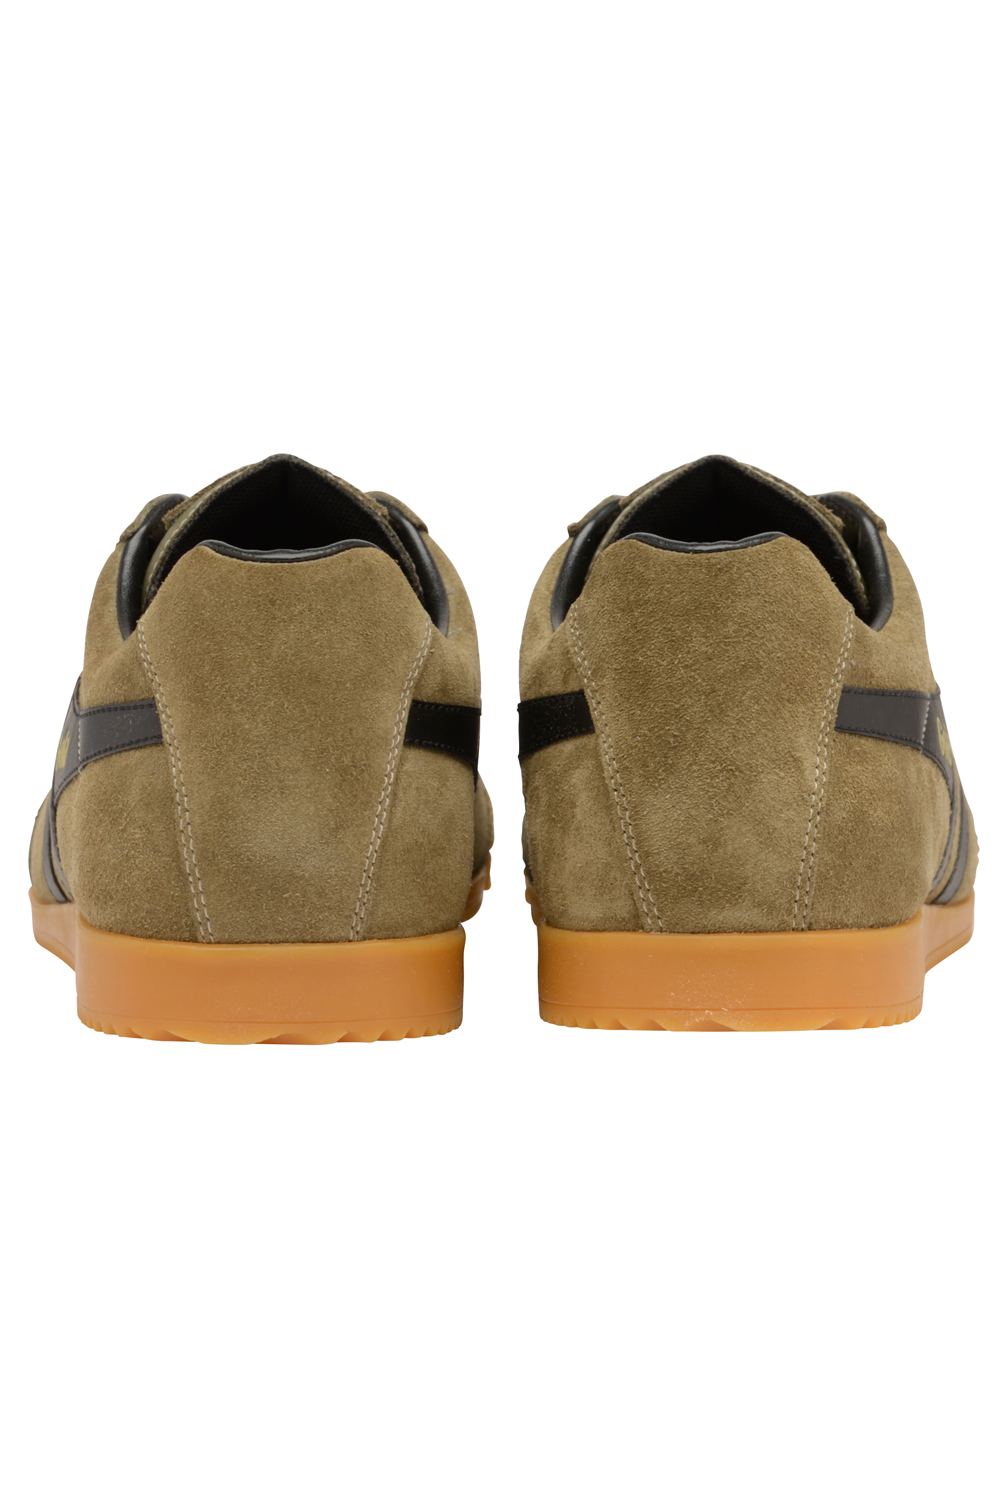 thumbnail 10 - Gola Harrier Suede Classic Vintage Lace-Up Sneakers Mens Trainers Low Top Shoes